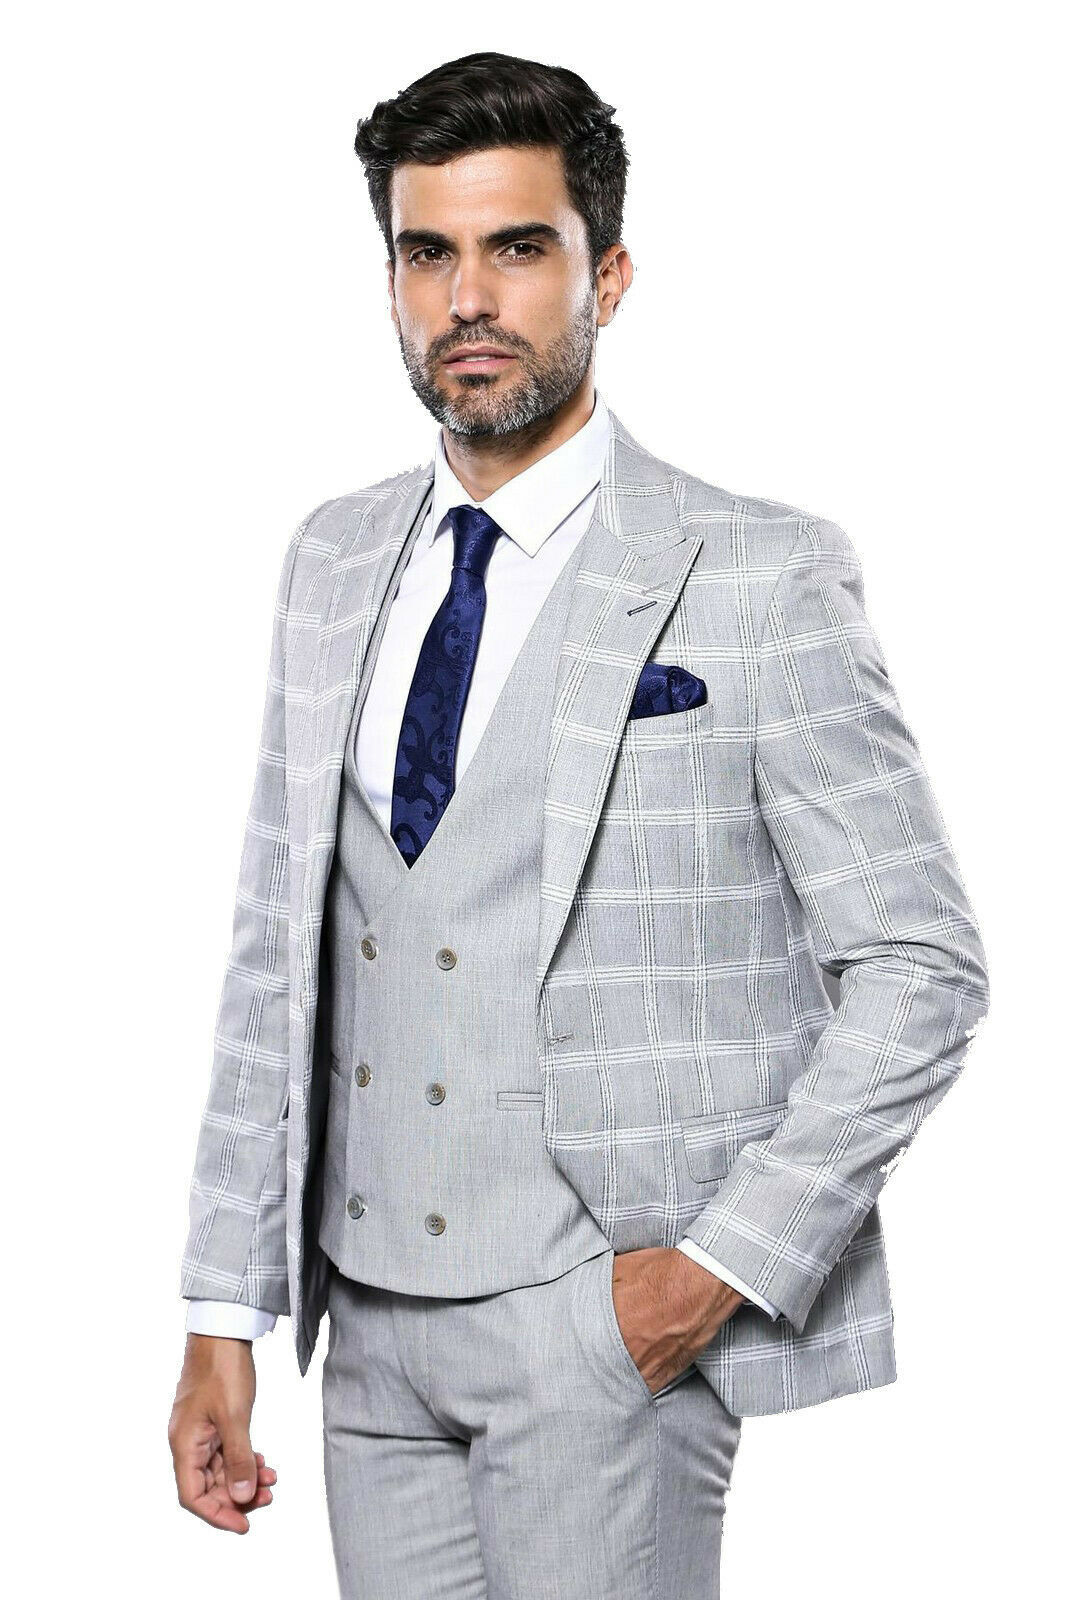 Primary image for Men Three Piece Vested Suit WESSI by J.VALINTIN Extra Slim Fit JV32 Gray Plaid